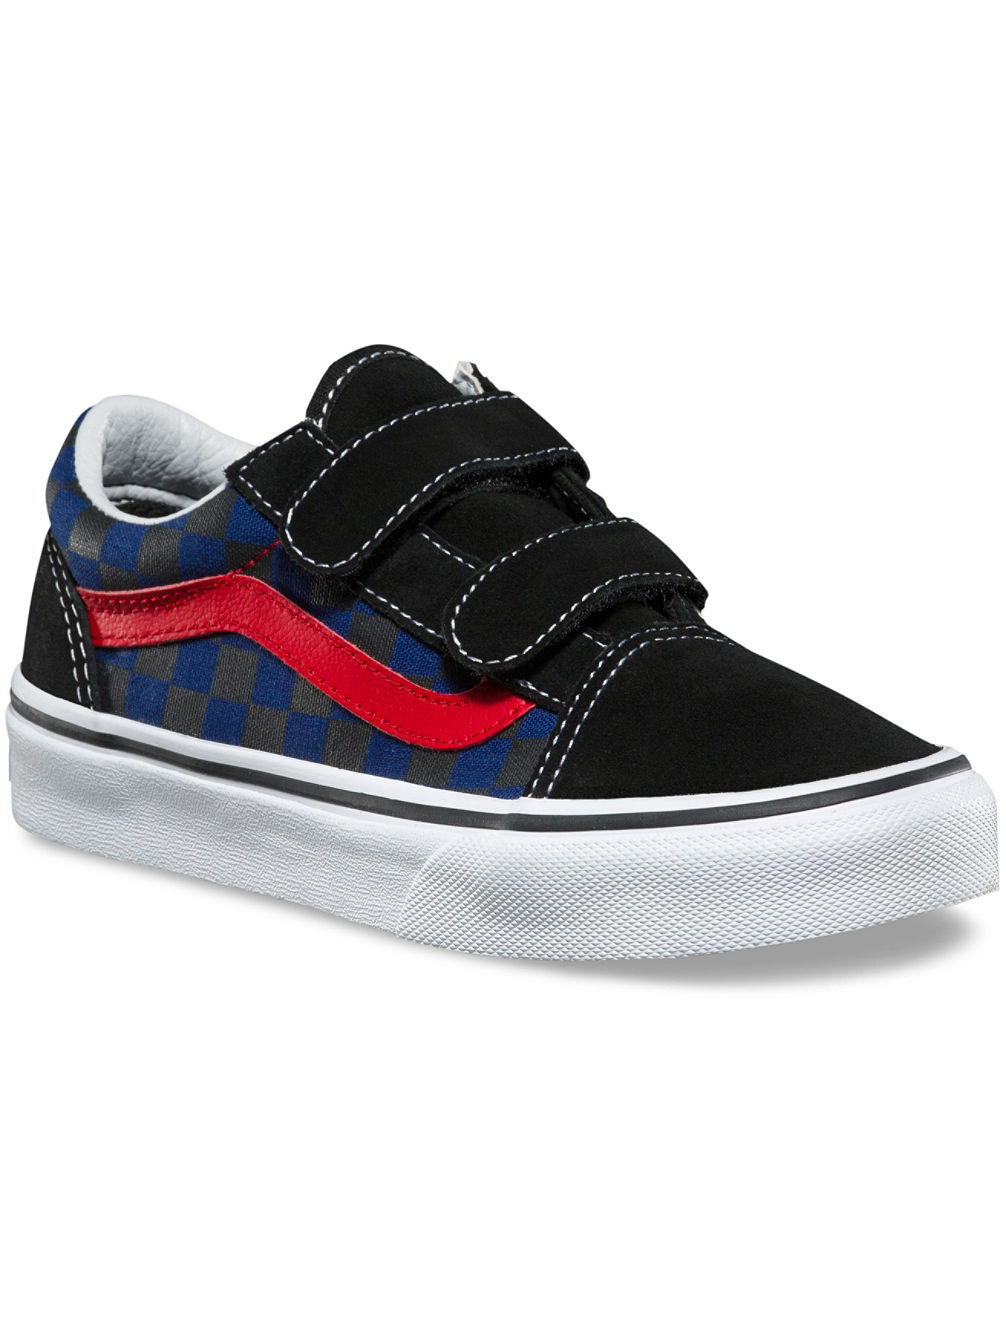 abc1f68385 Buy Vans Checkerboard Old Skool V Sneakers Boys online at Blue Tomato